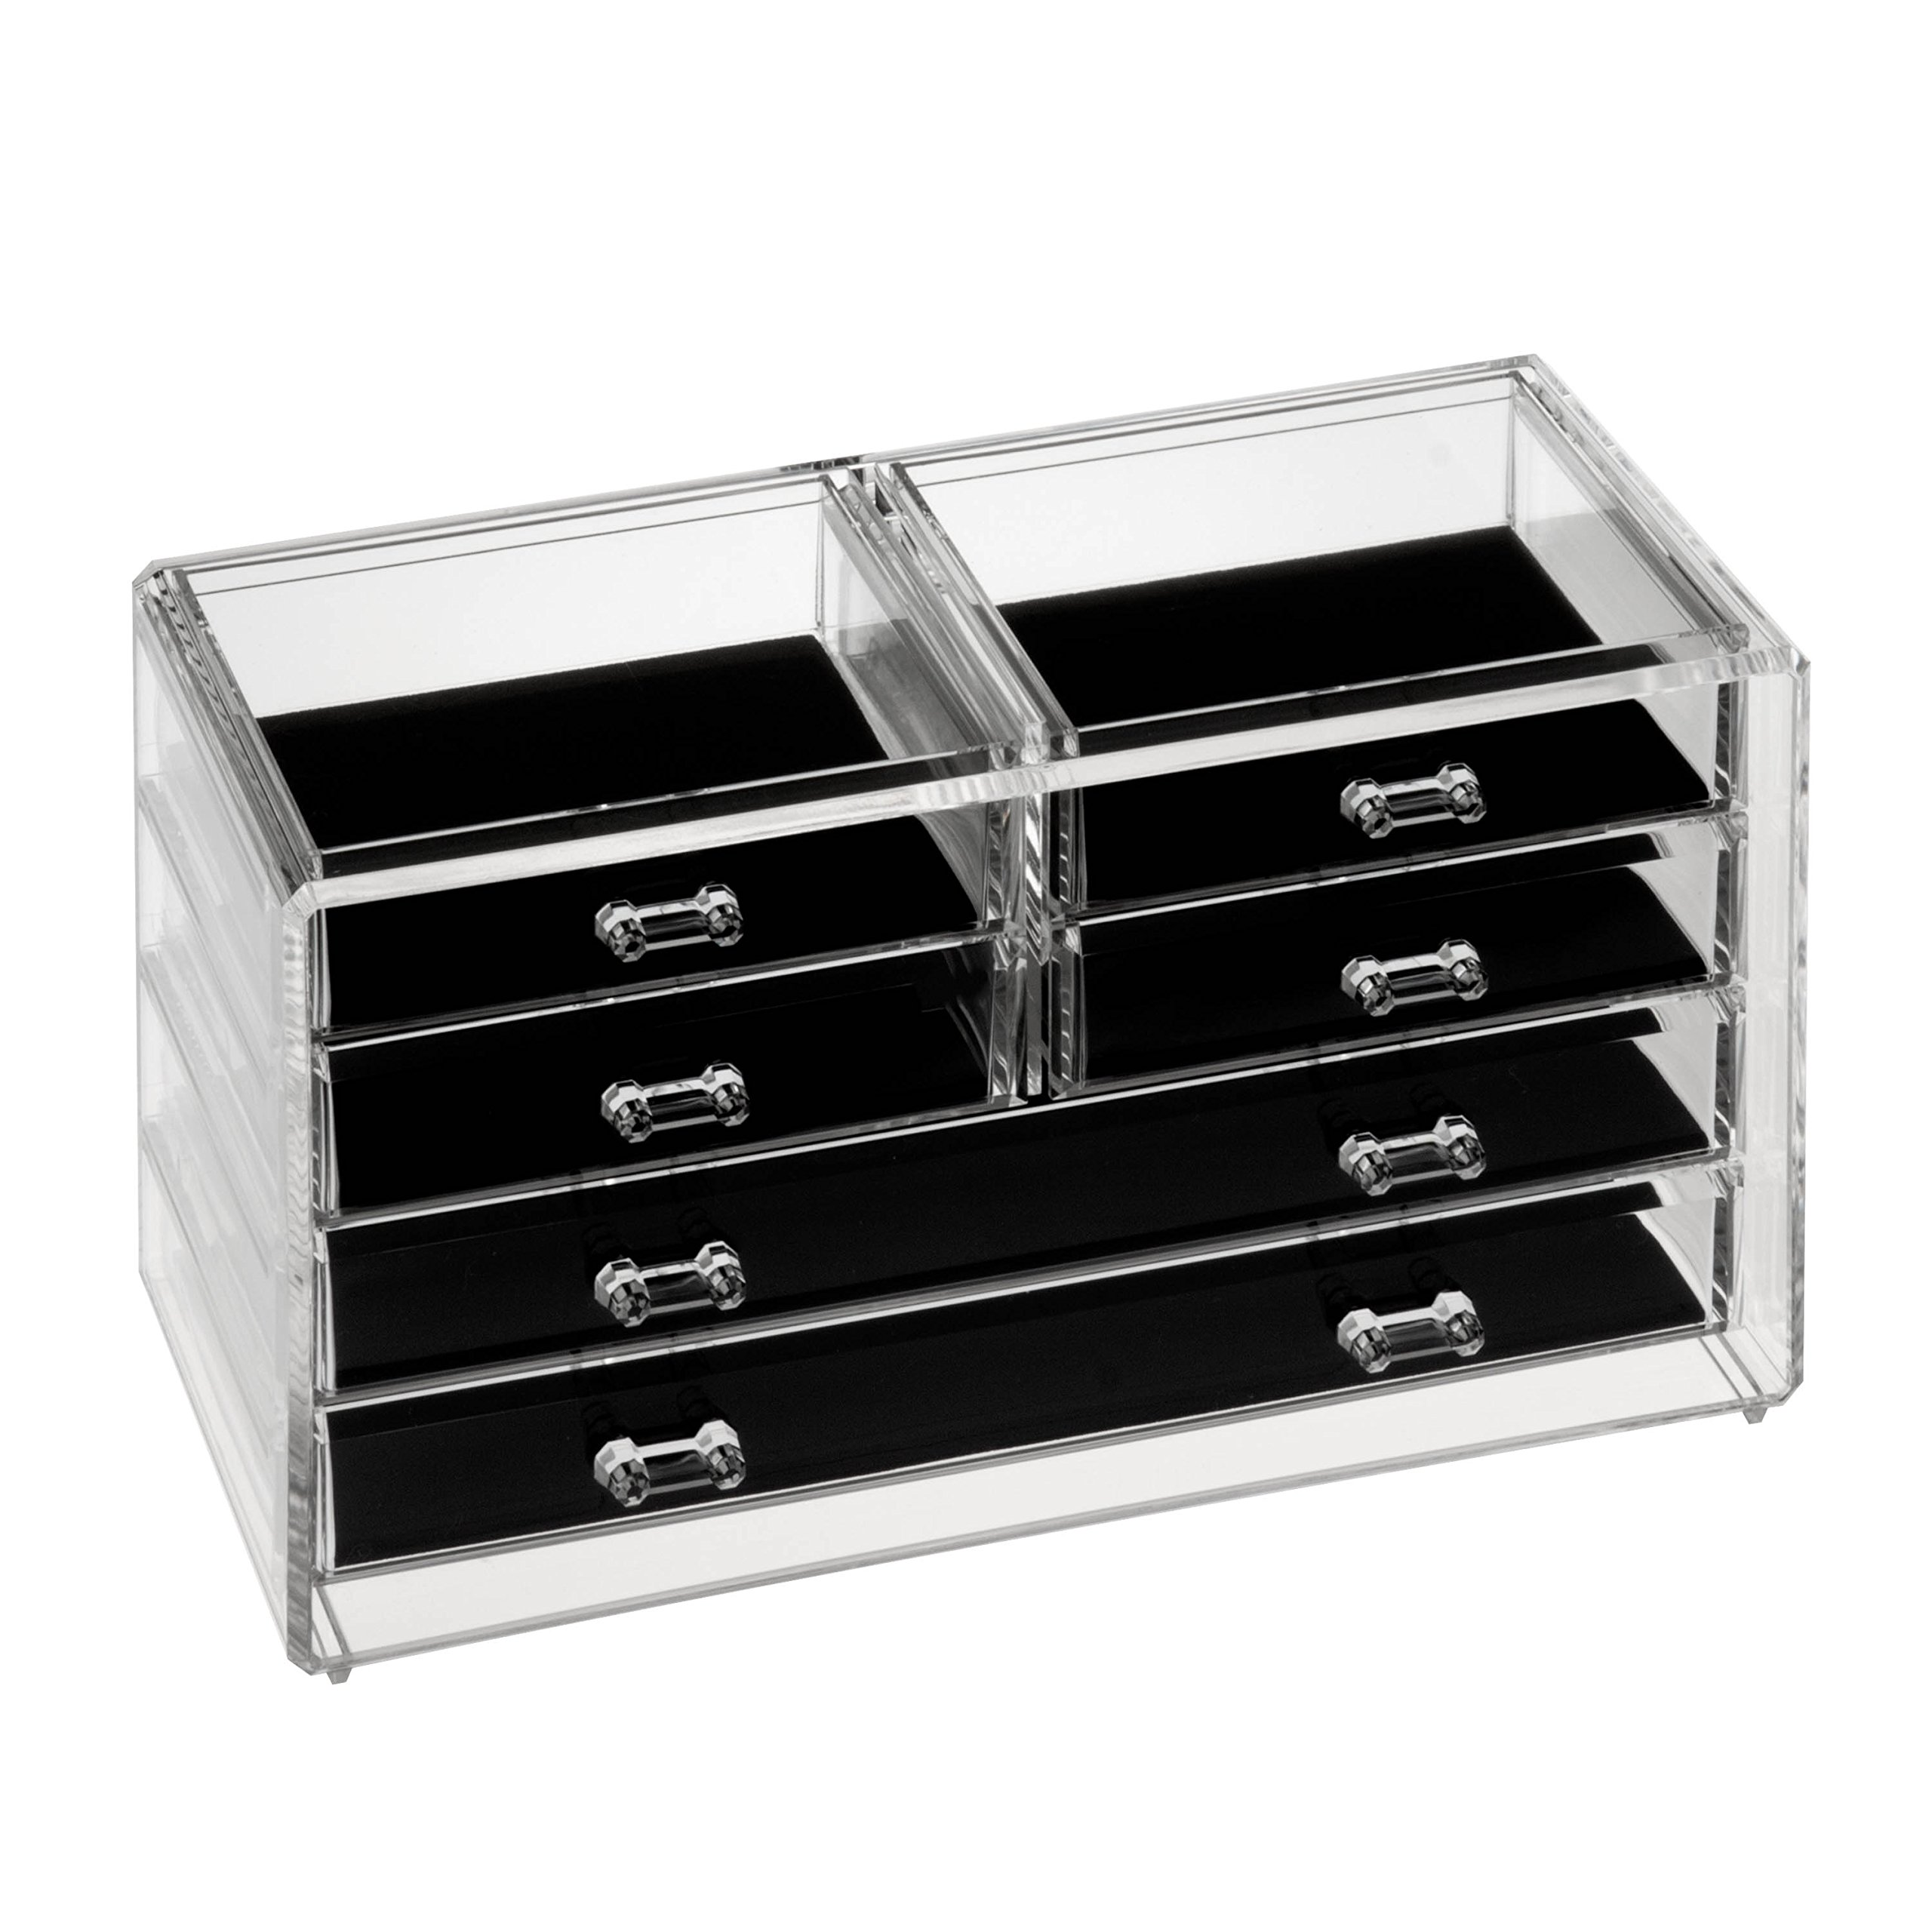 HCD Refined by Honey-Can-Do STO-06381 Stephanie Jewelry Chest, 7.9L x 7.3W x 13H by Honey-Can-Do